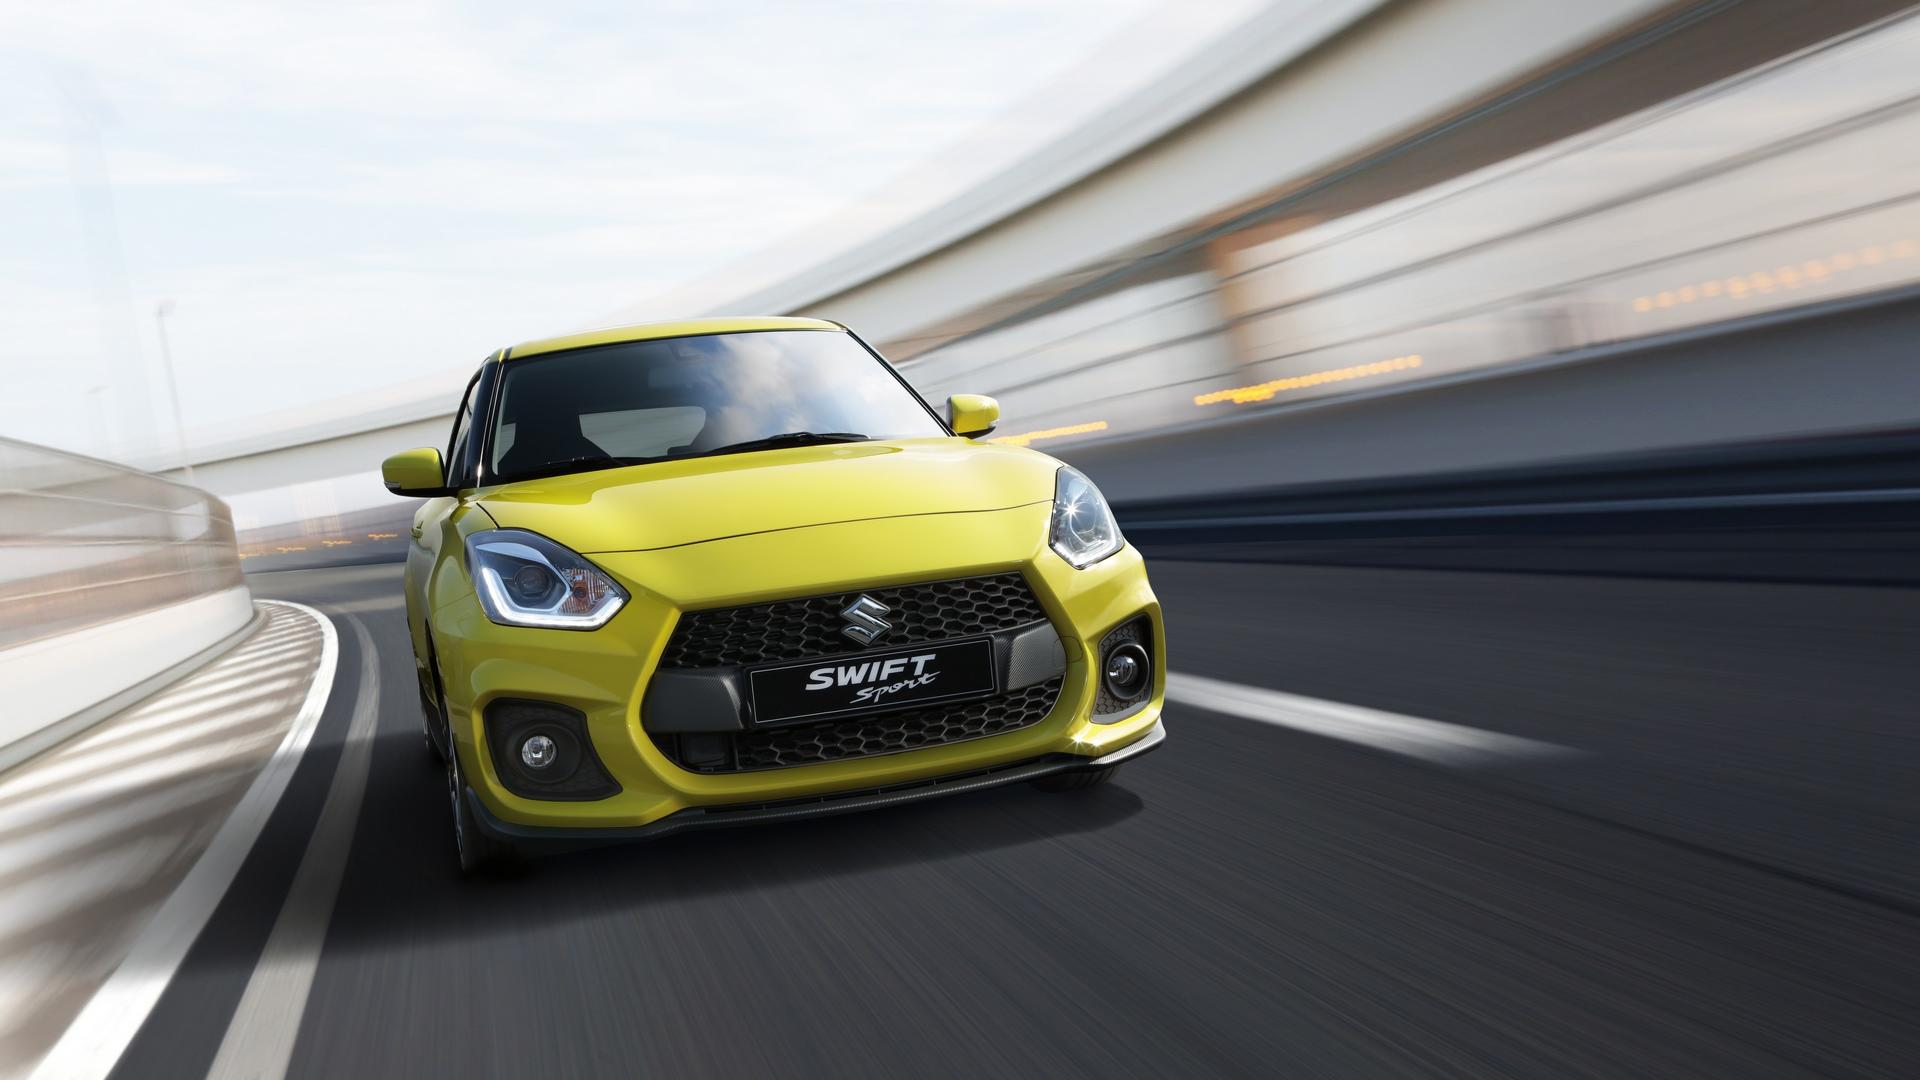 The All New Swift Sport Had Its Global Premiere At The Frankfurt Motor Show  Today. The Third Generation Swift Sport Features A Lower, Wider Stance, ...